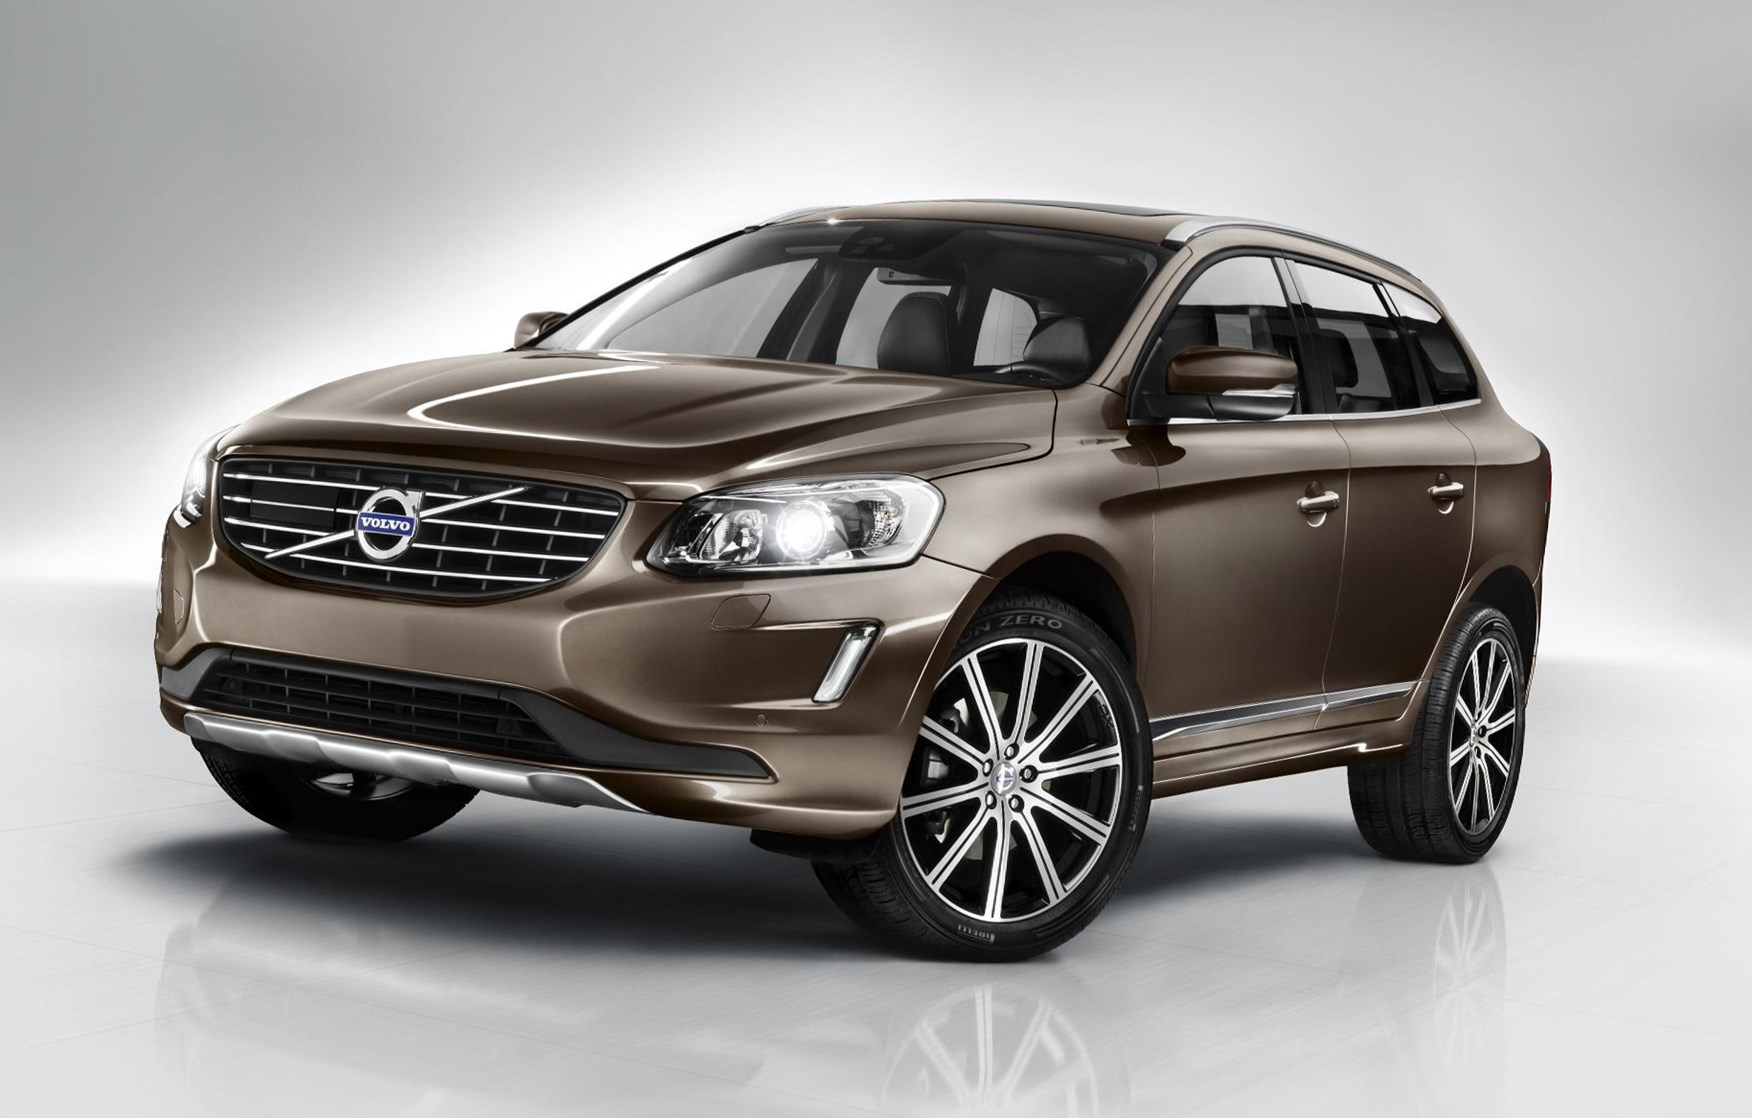 volvo xc60 estate 2008 2017 photos parkers. Black Bedroom Furniture Sets. Home Design Ideas